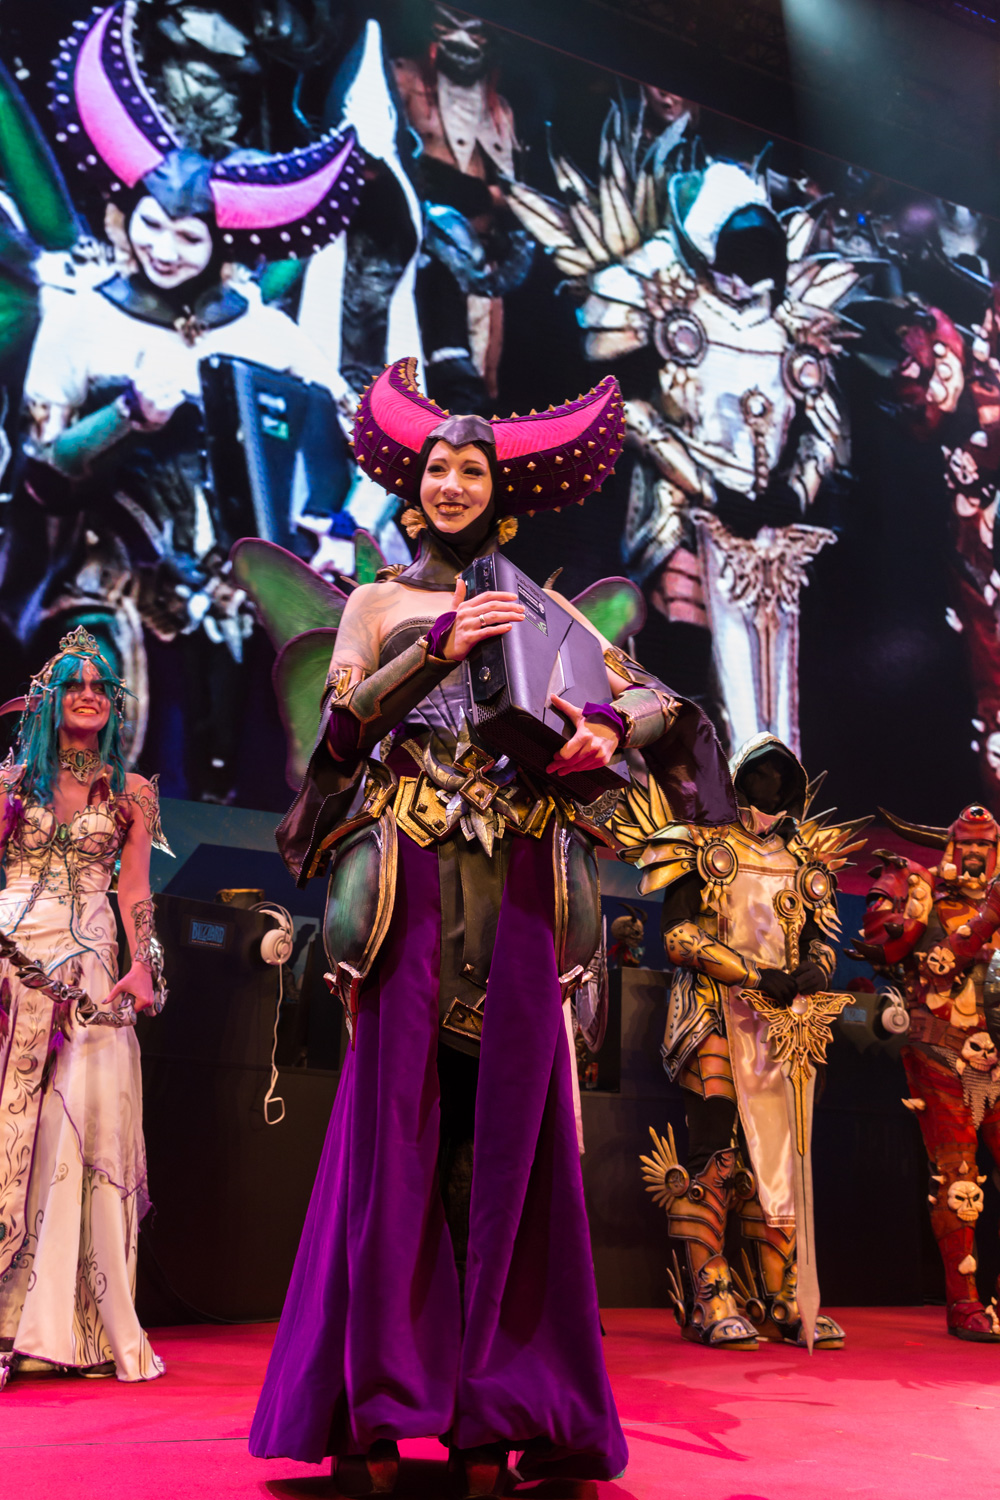 blizzard costume winners 2014 3